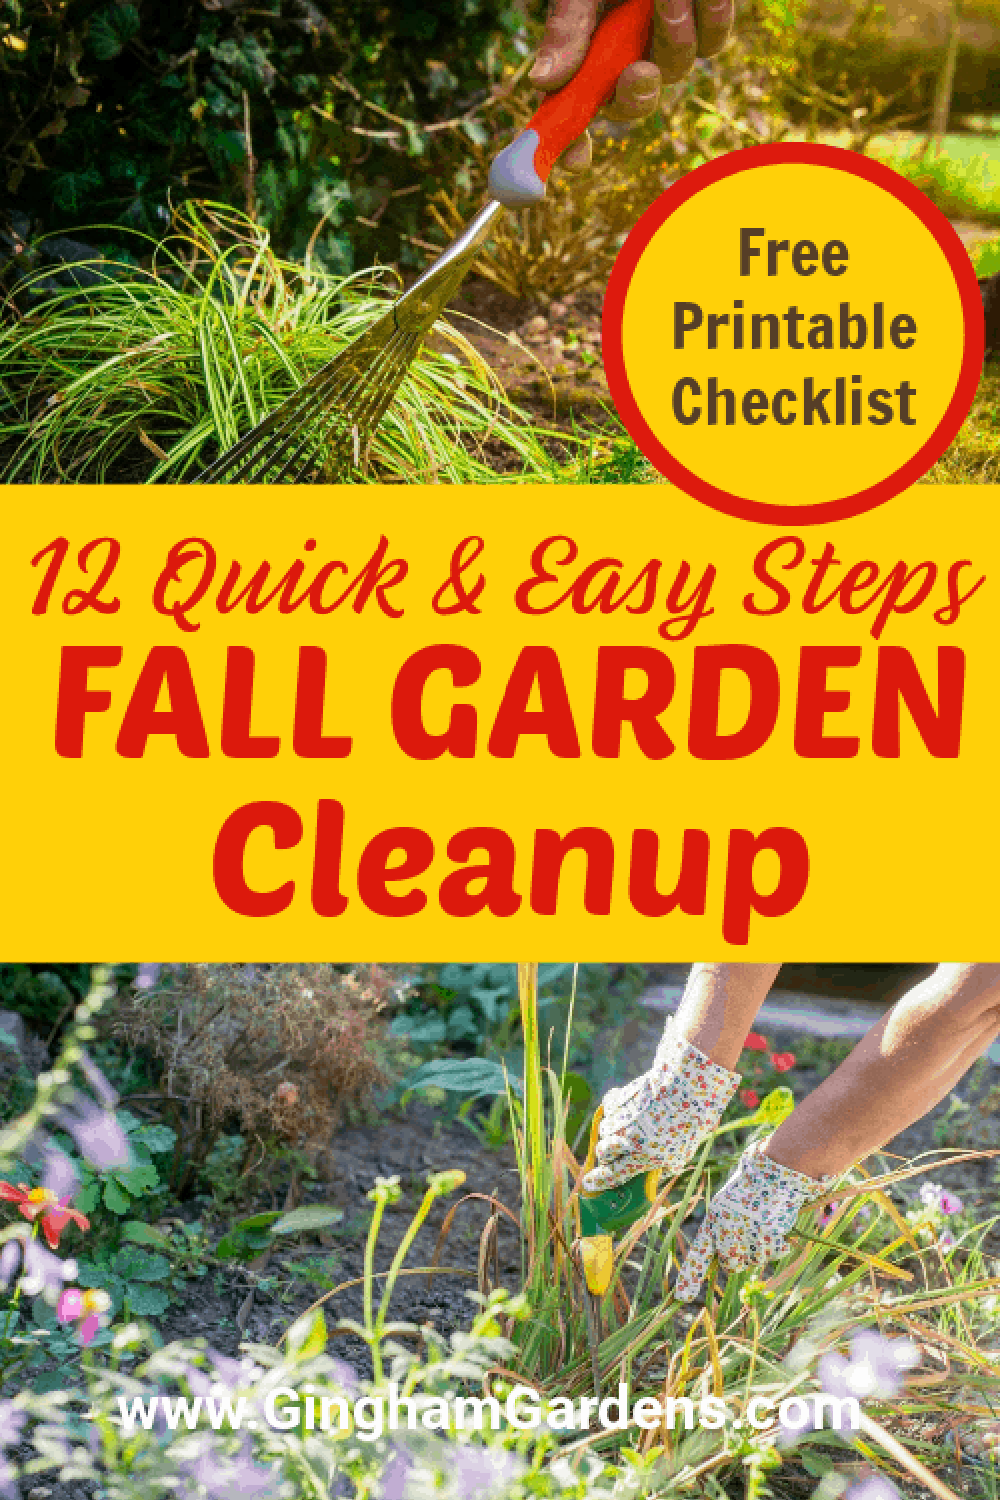 Images of Fall Gardens with Text Overlay - 12 Quick and Easy Steps Fall Garden Cleanup